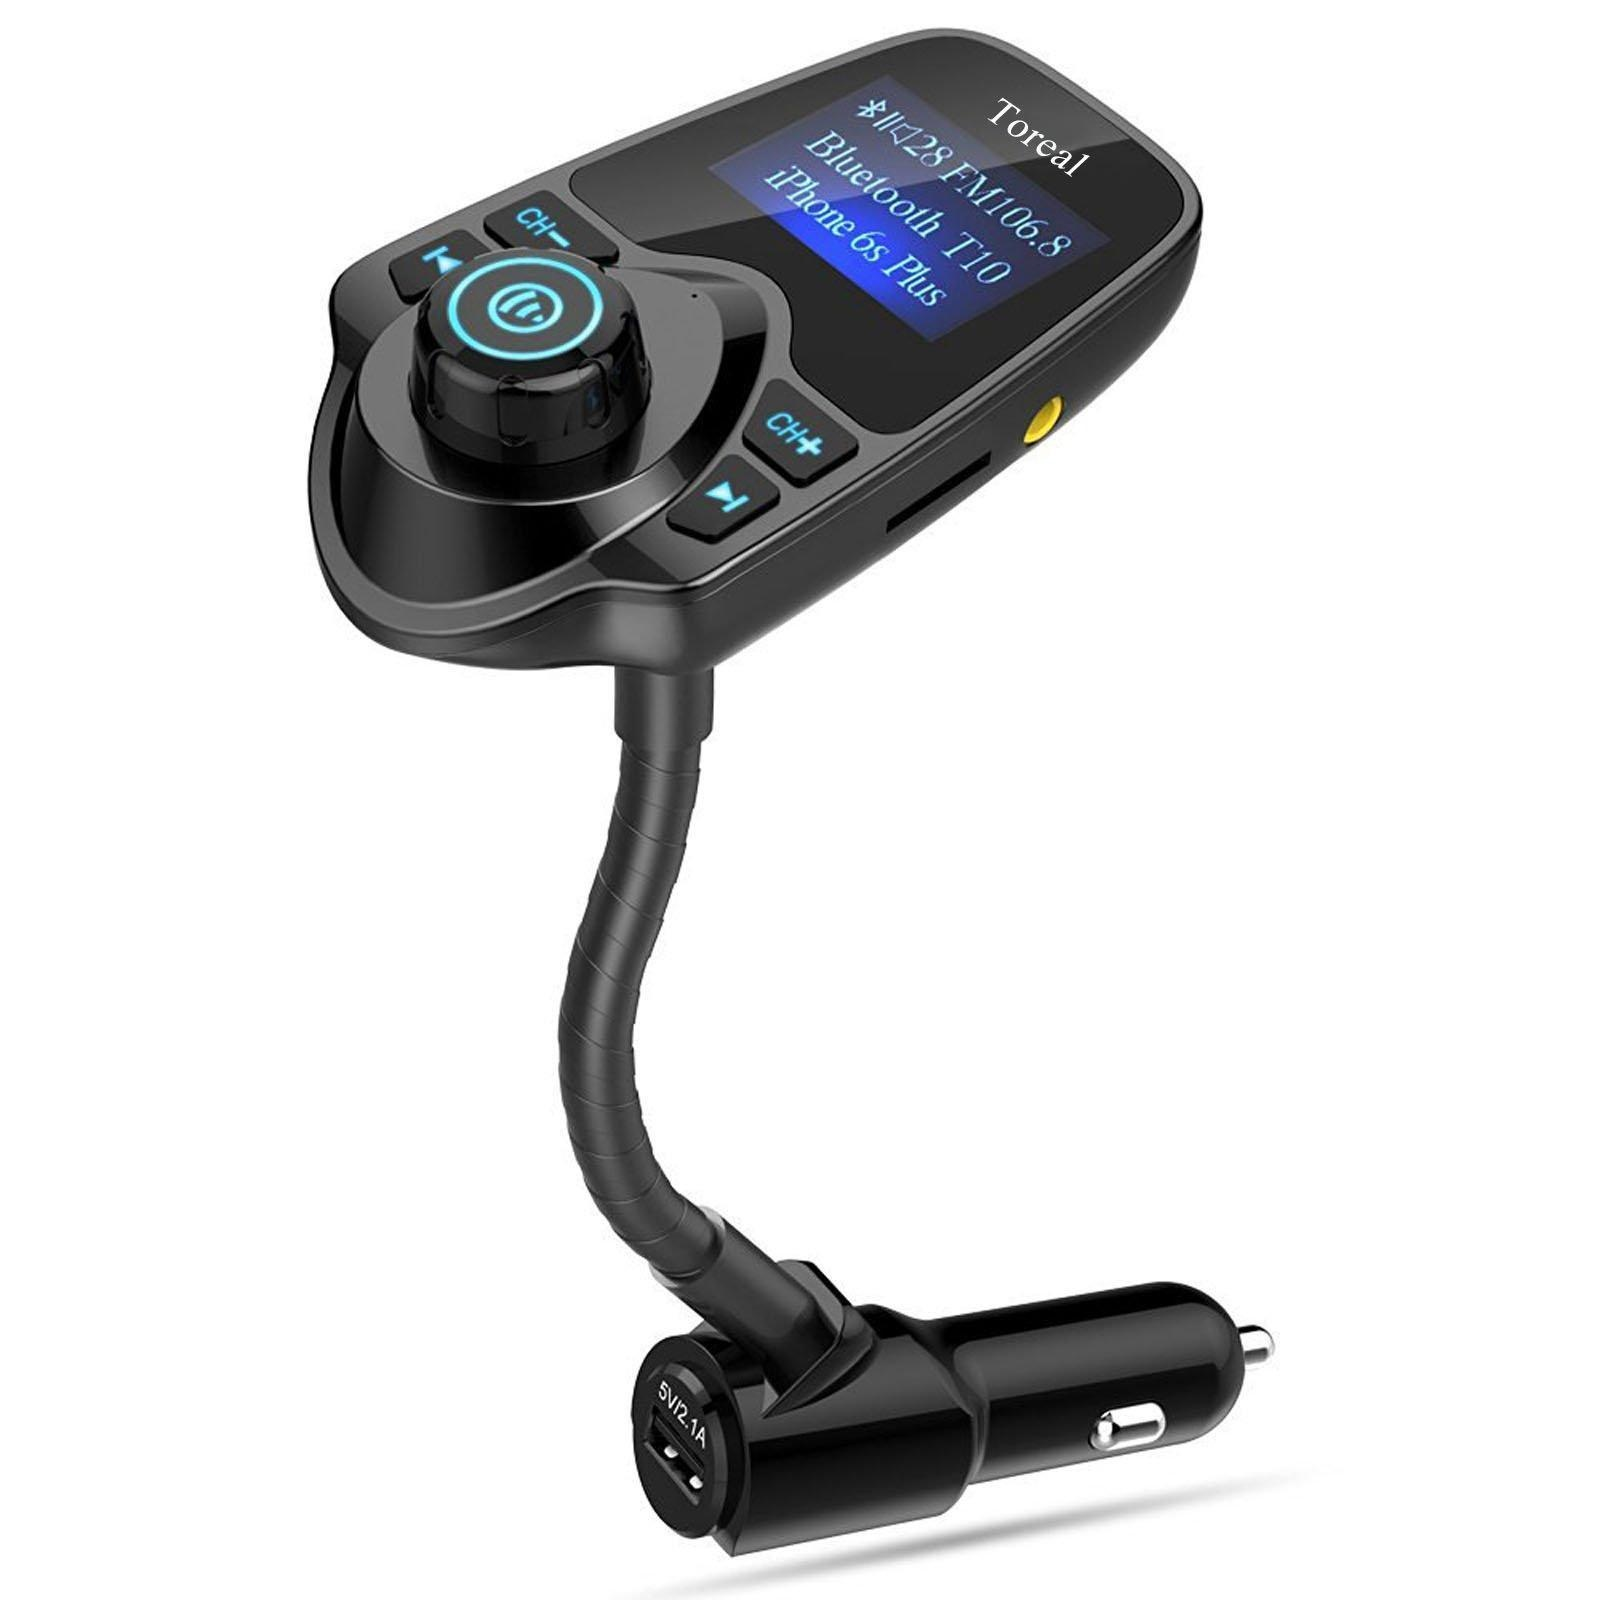 Toreal Wireless In-Car Hands Free Bluetooth FM Transmitter Radio Adapter Audio Receiver Stereo Music Car Kit with 1.44 Inch Display and USB Car Charger